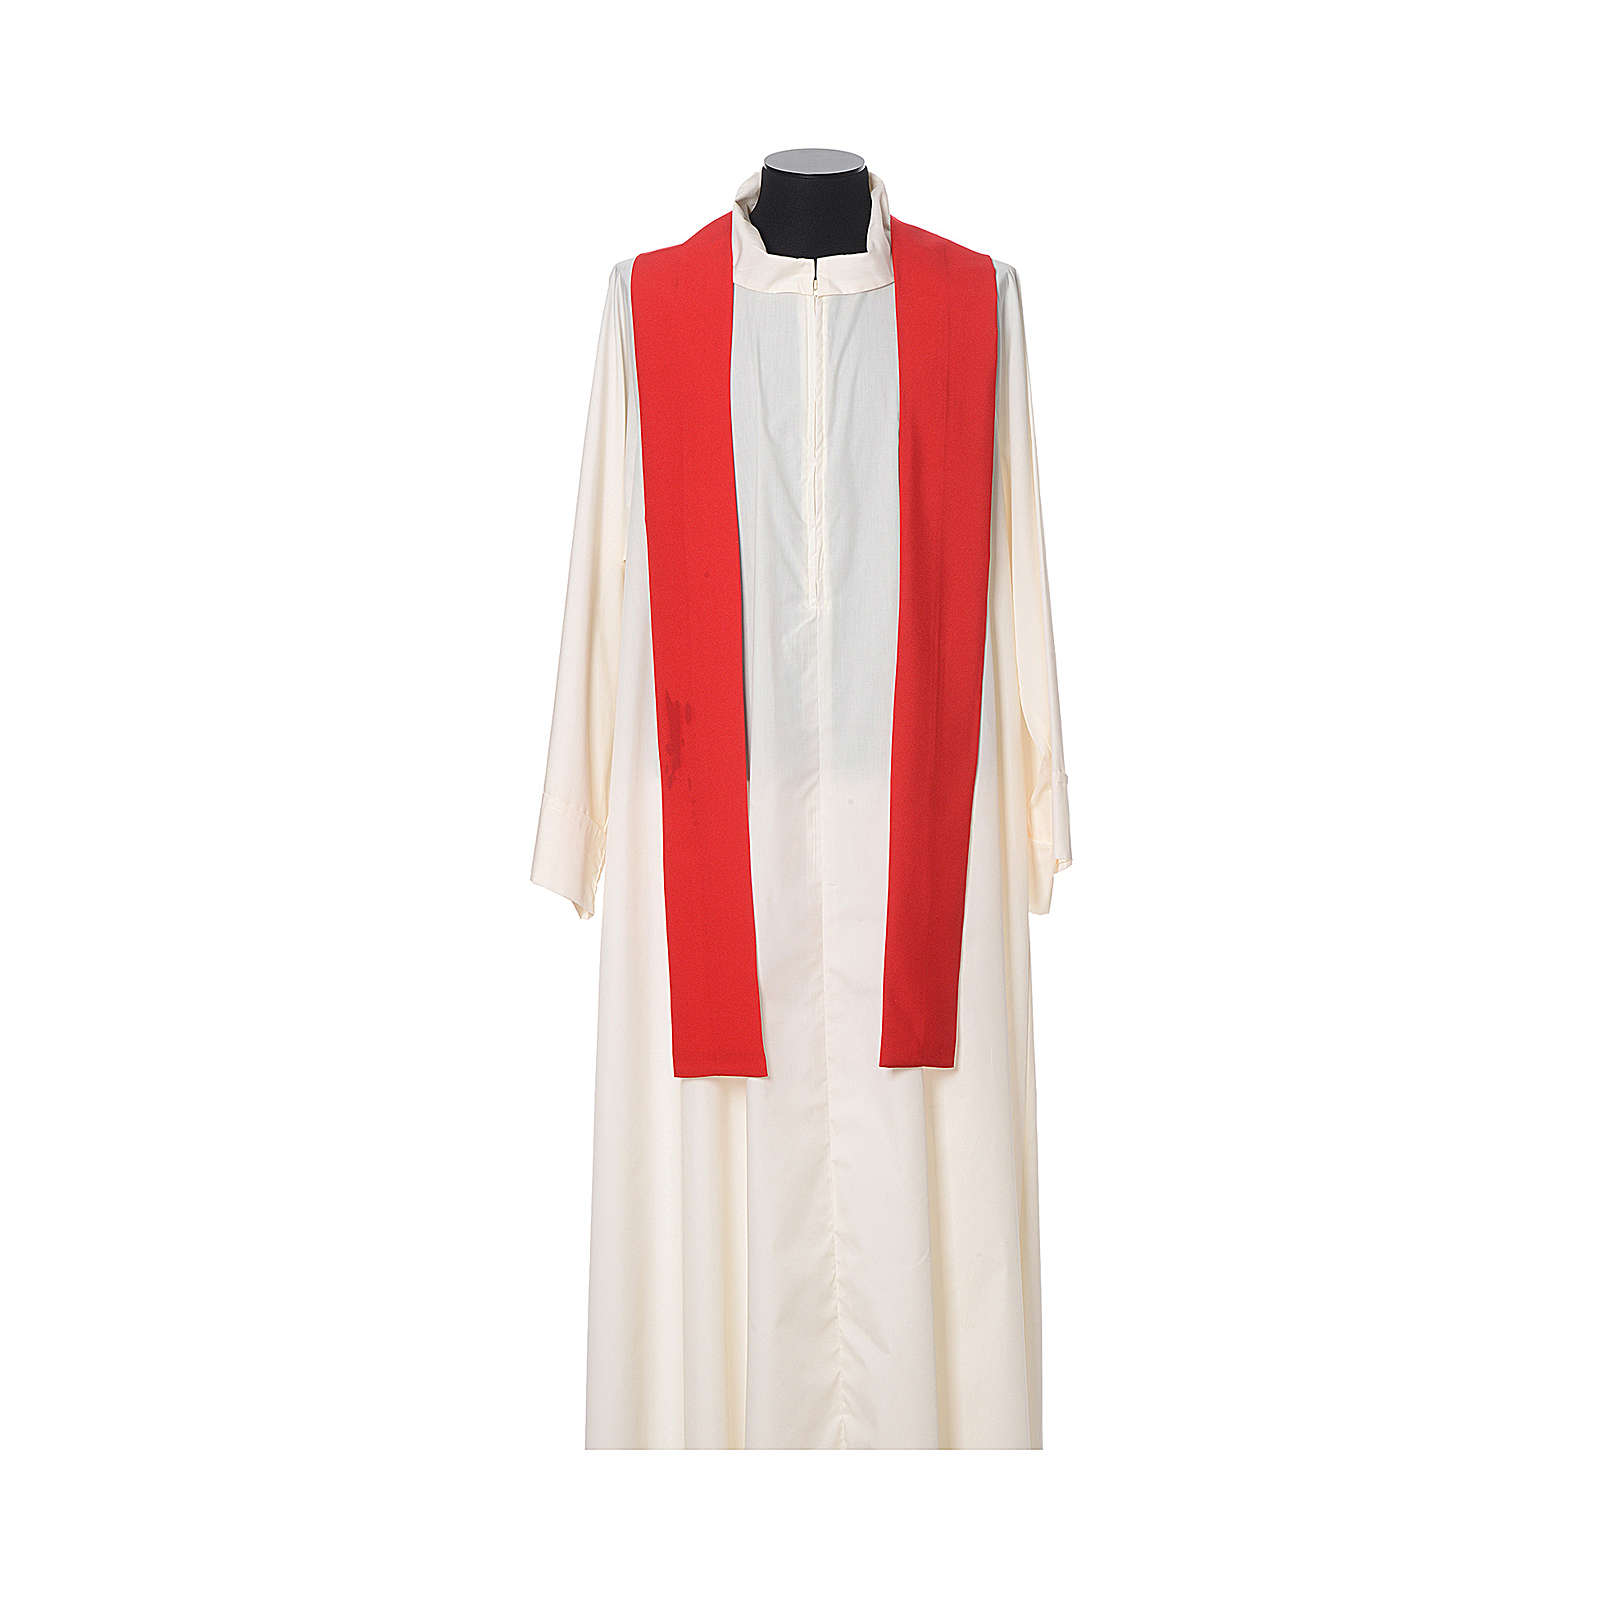 IHS Chasuble with cross and wheat embroidery in polyester 4